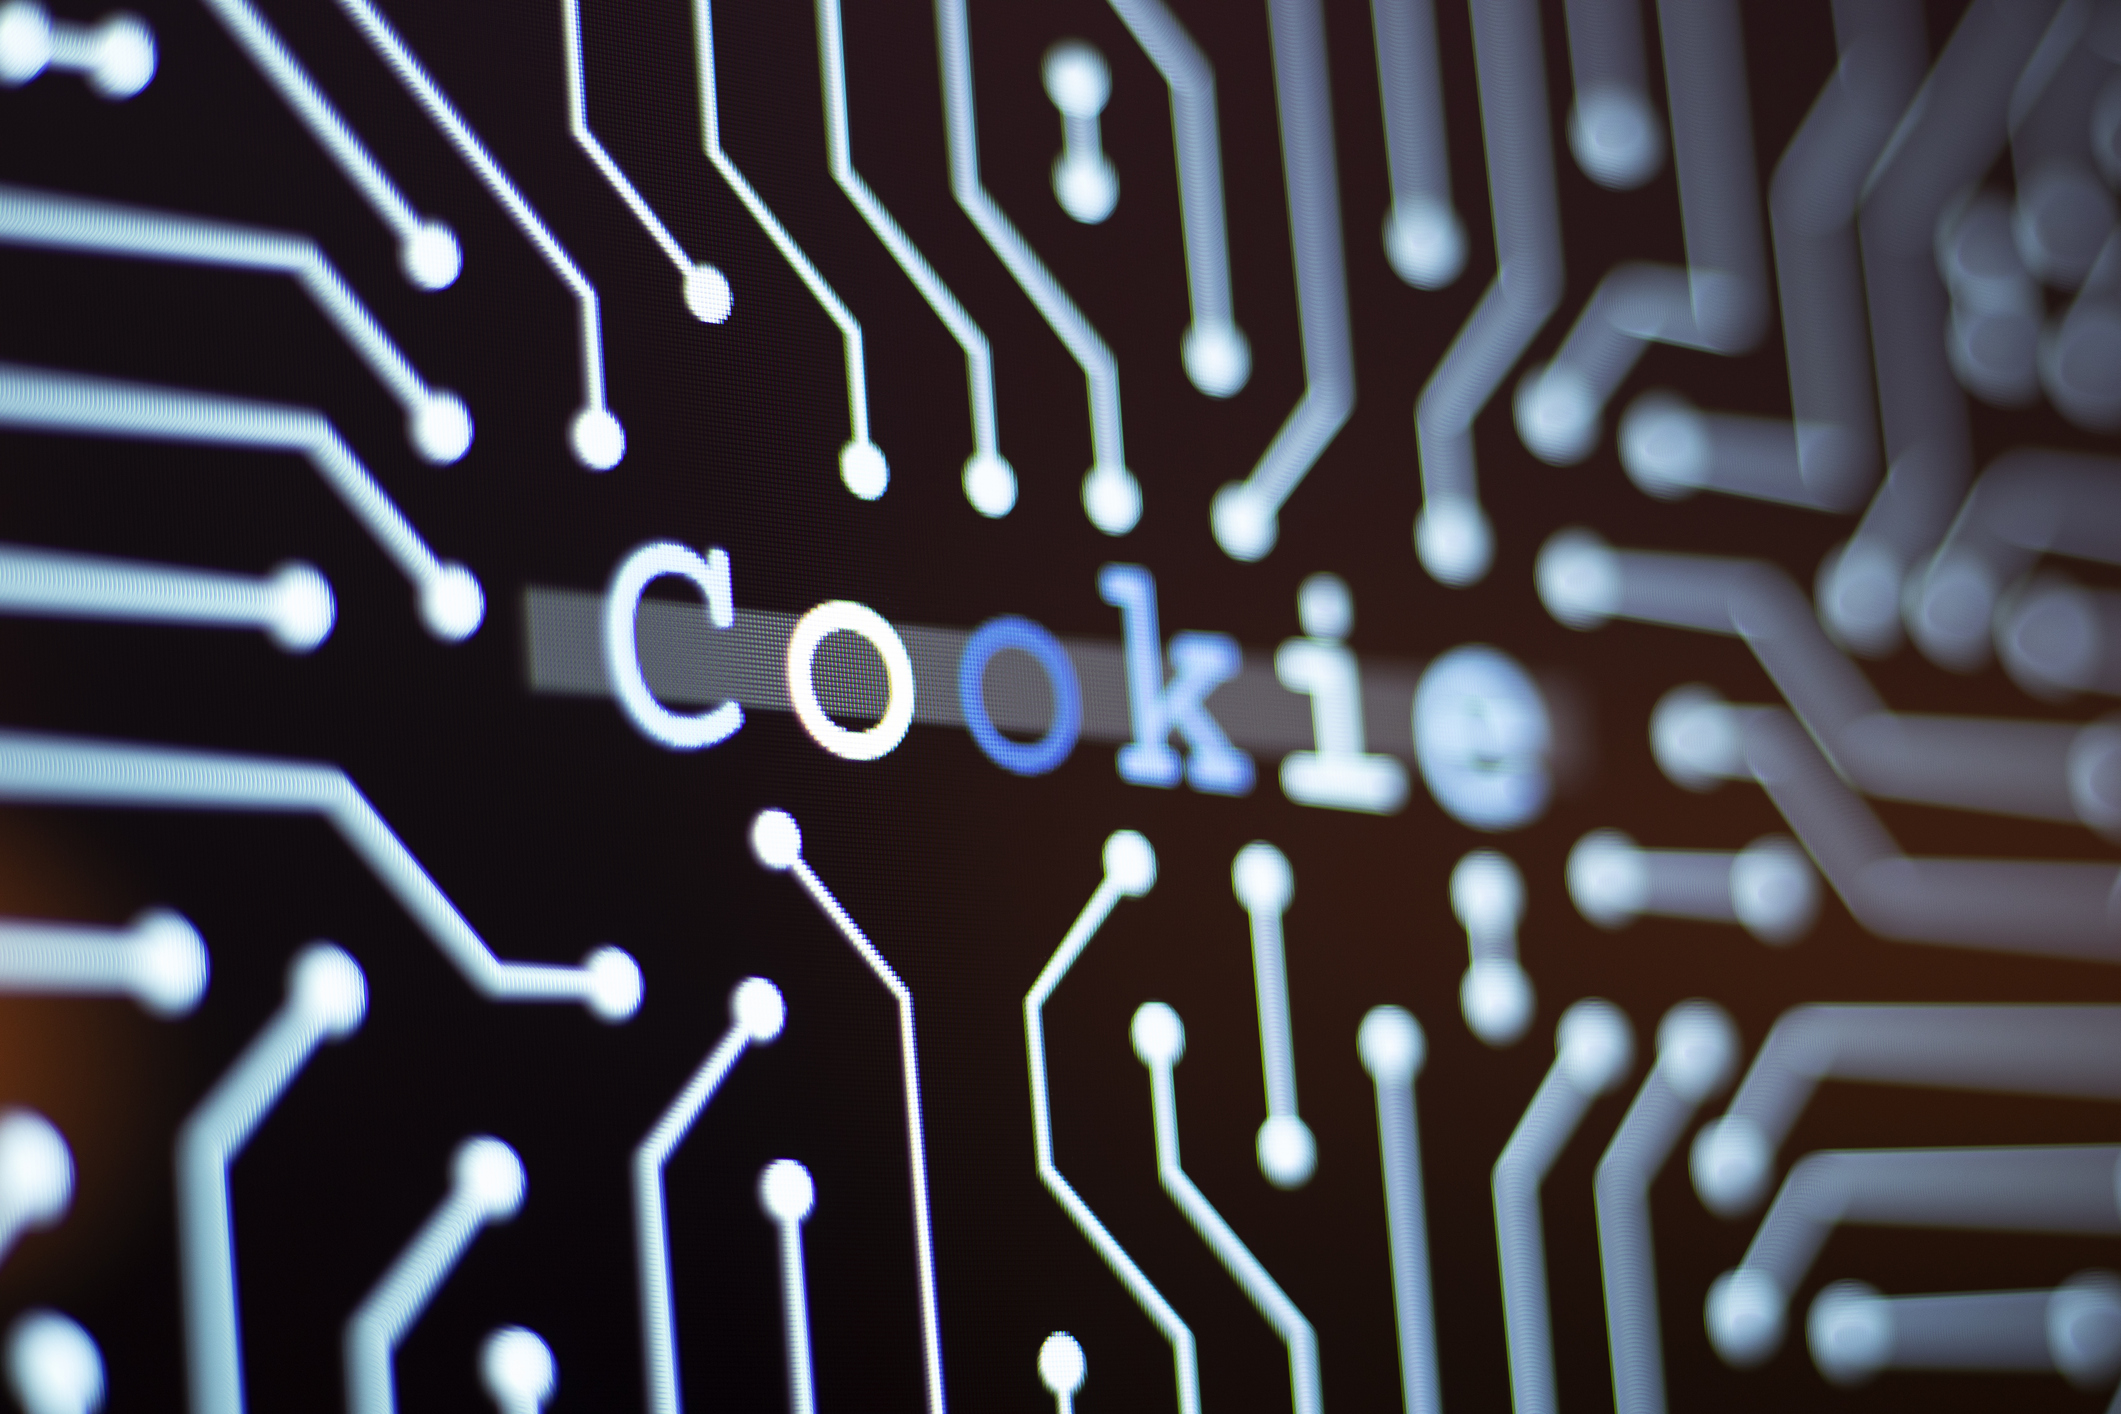 Technology Background and Circuit Board With Cookie Message.